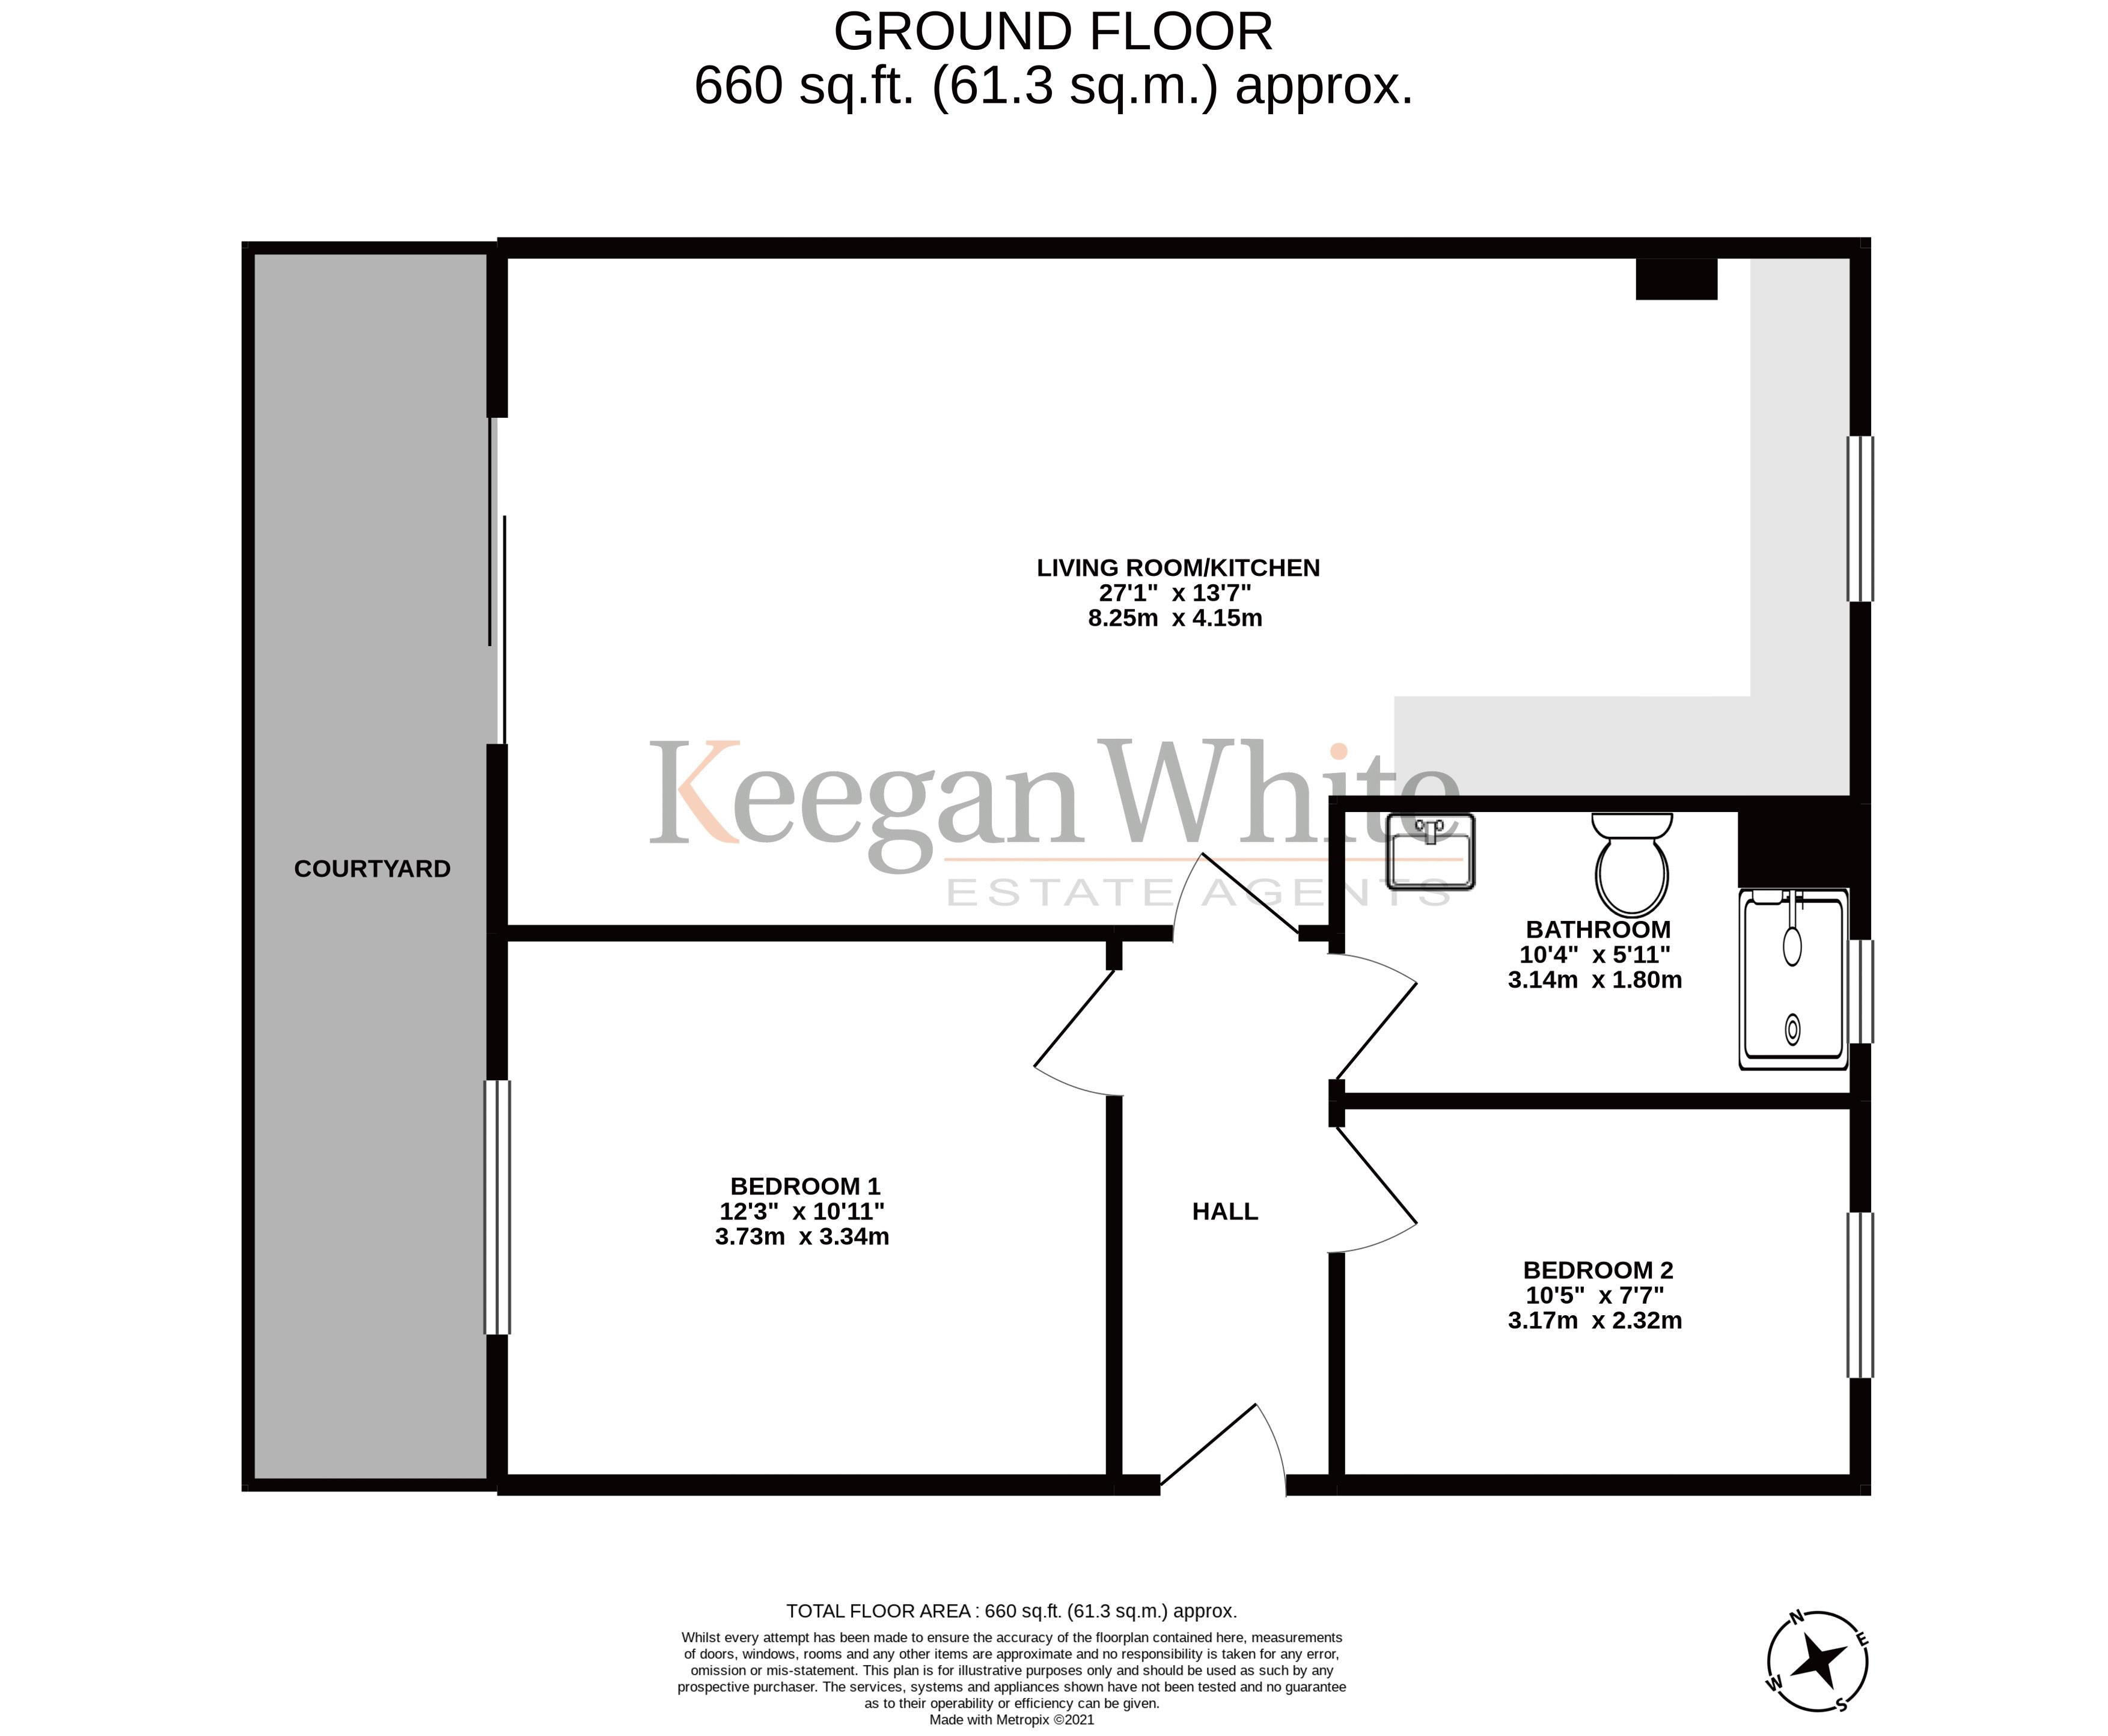 Keegan White Estate Agents in High Wycombe - Whole